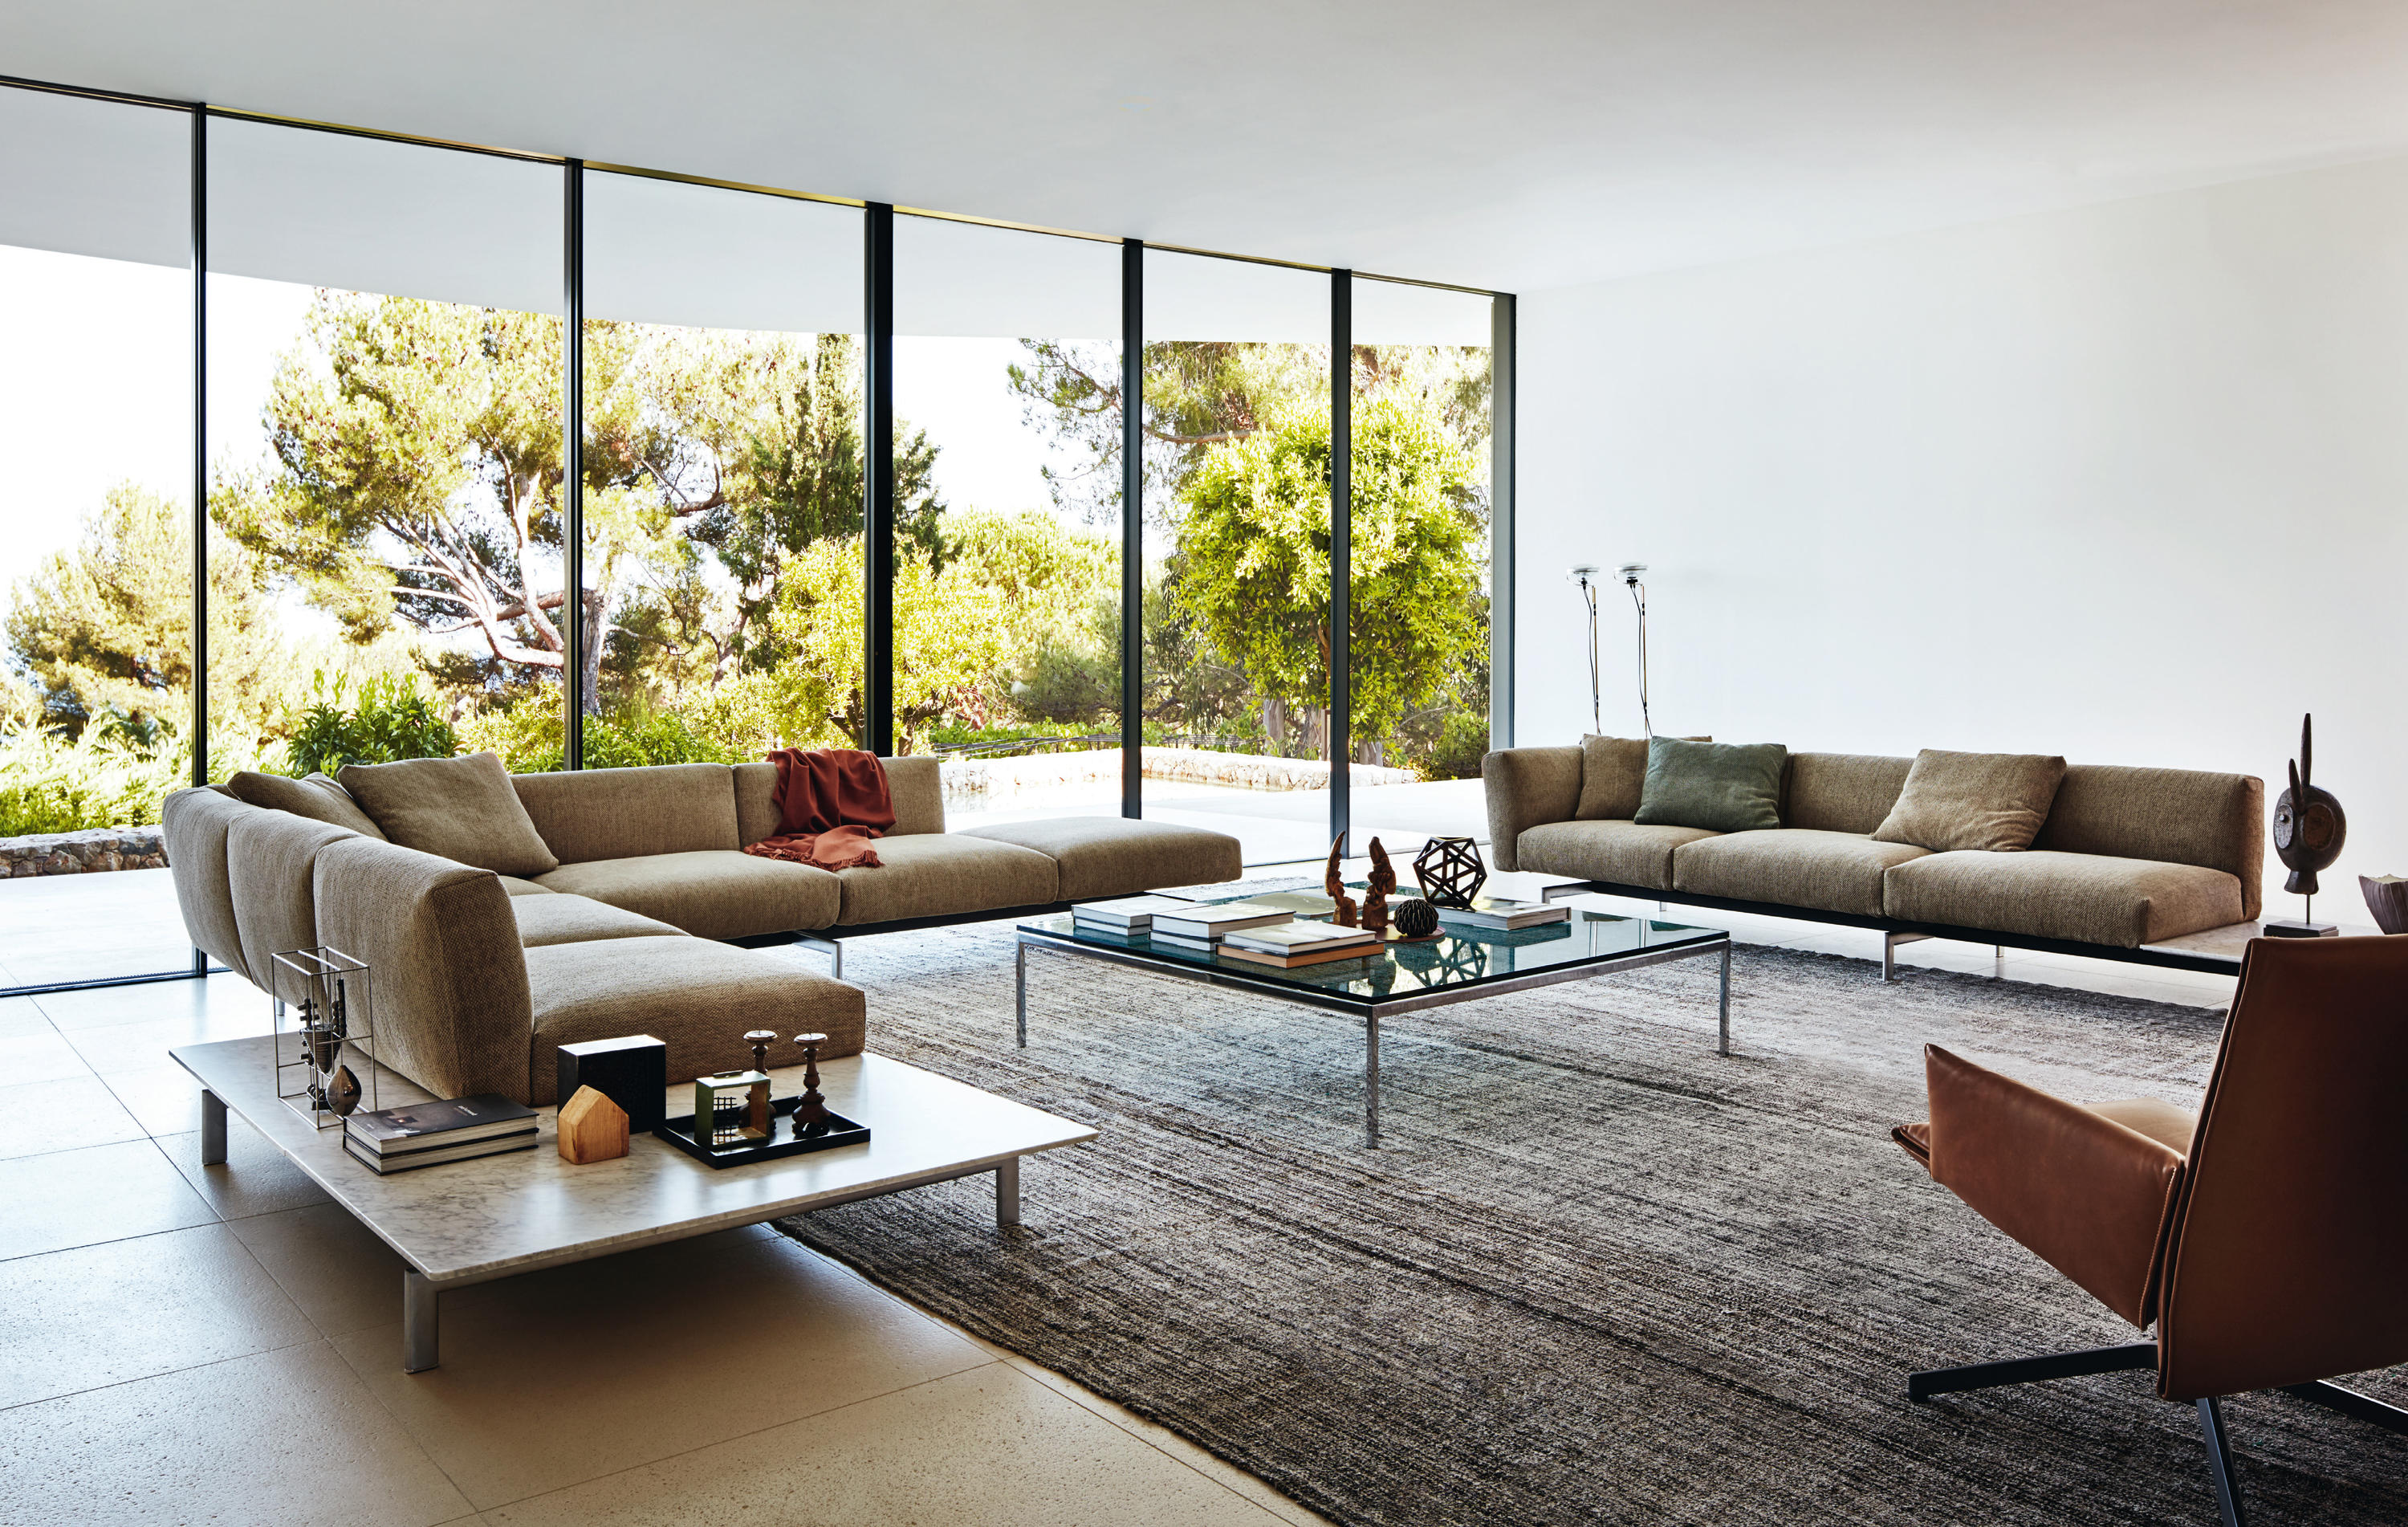 FLORENCE KNOLL LOUNGE 3 SEAT SOFA Lounge sofas from Knoll